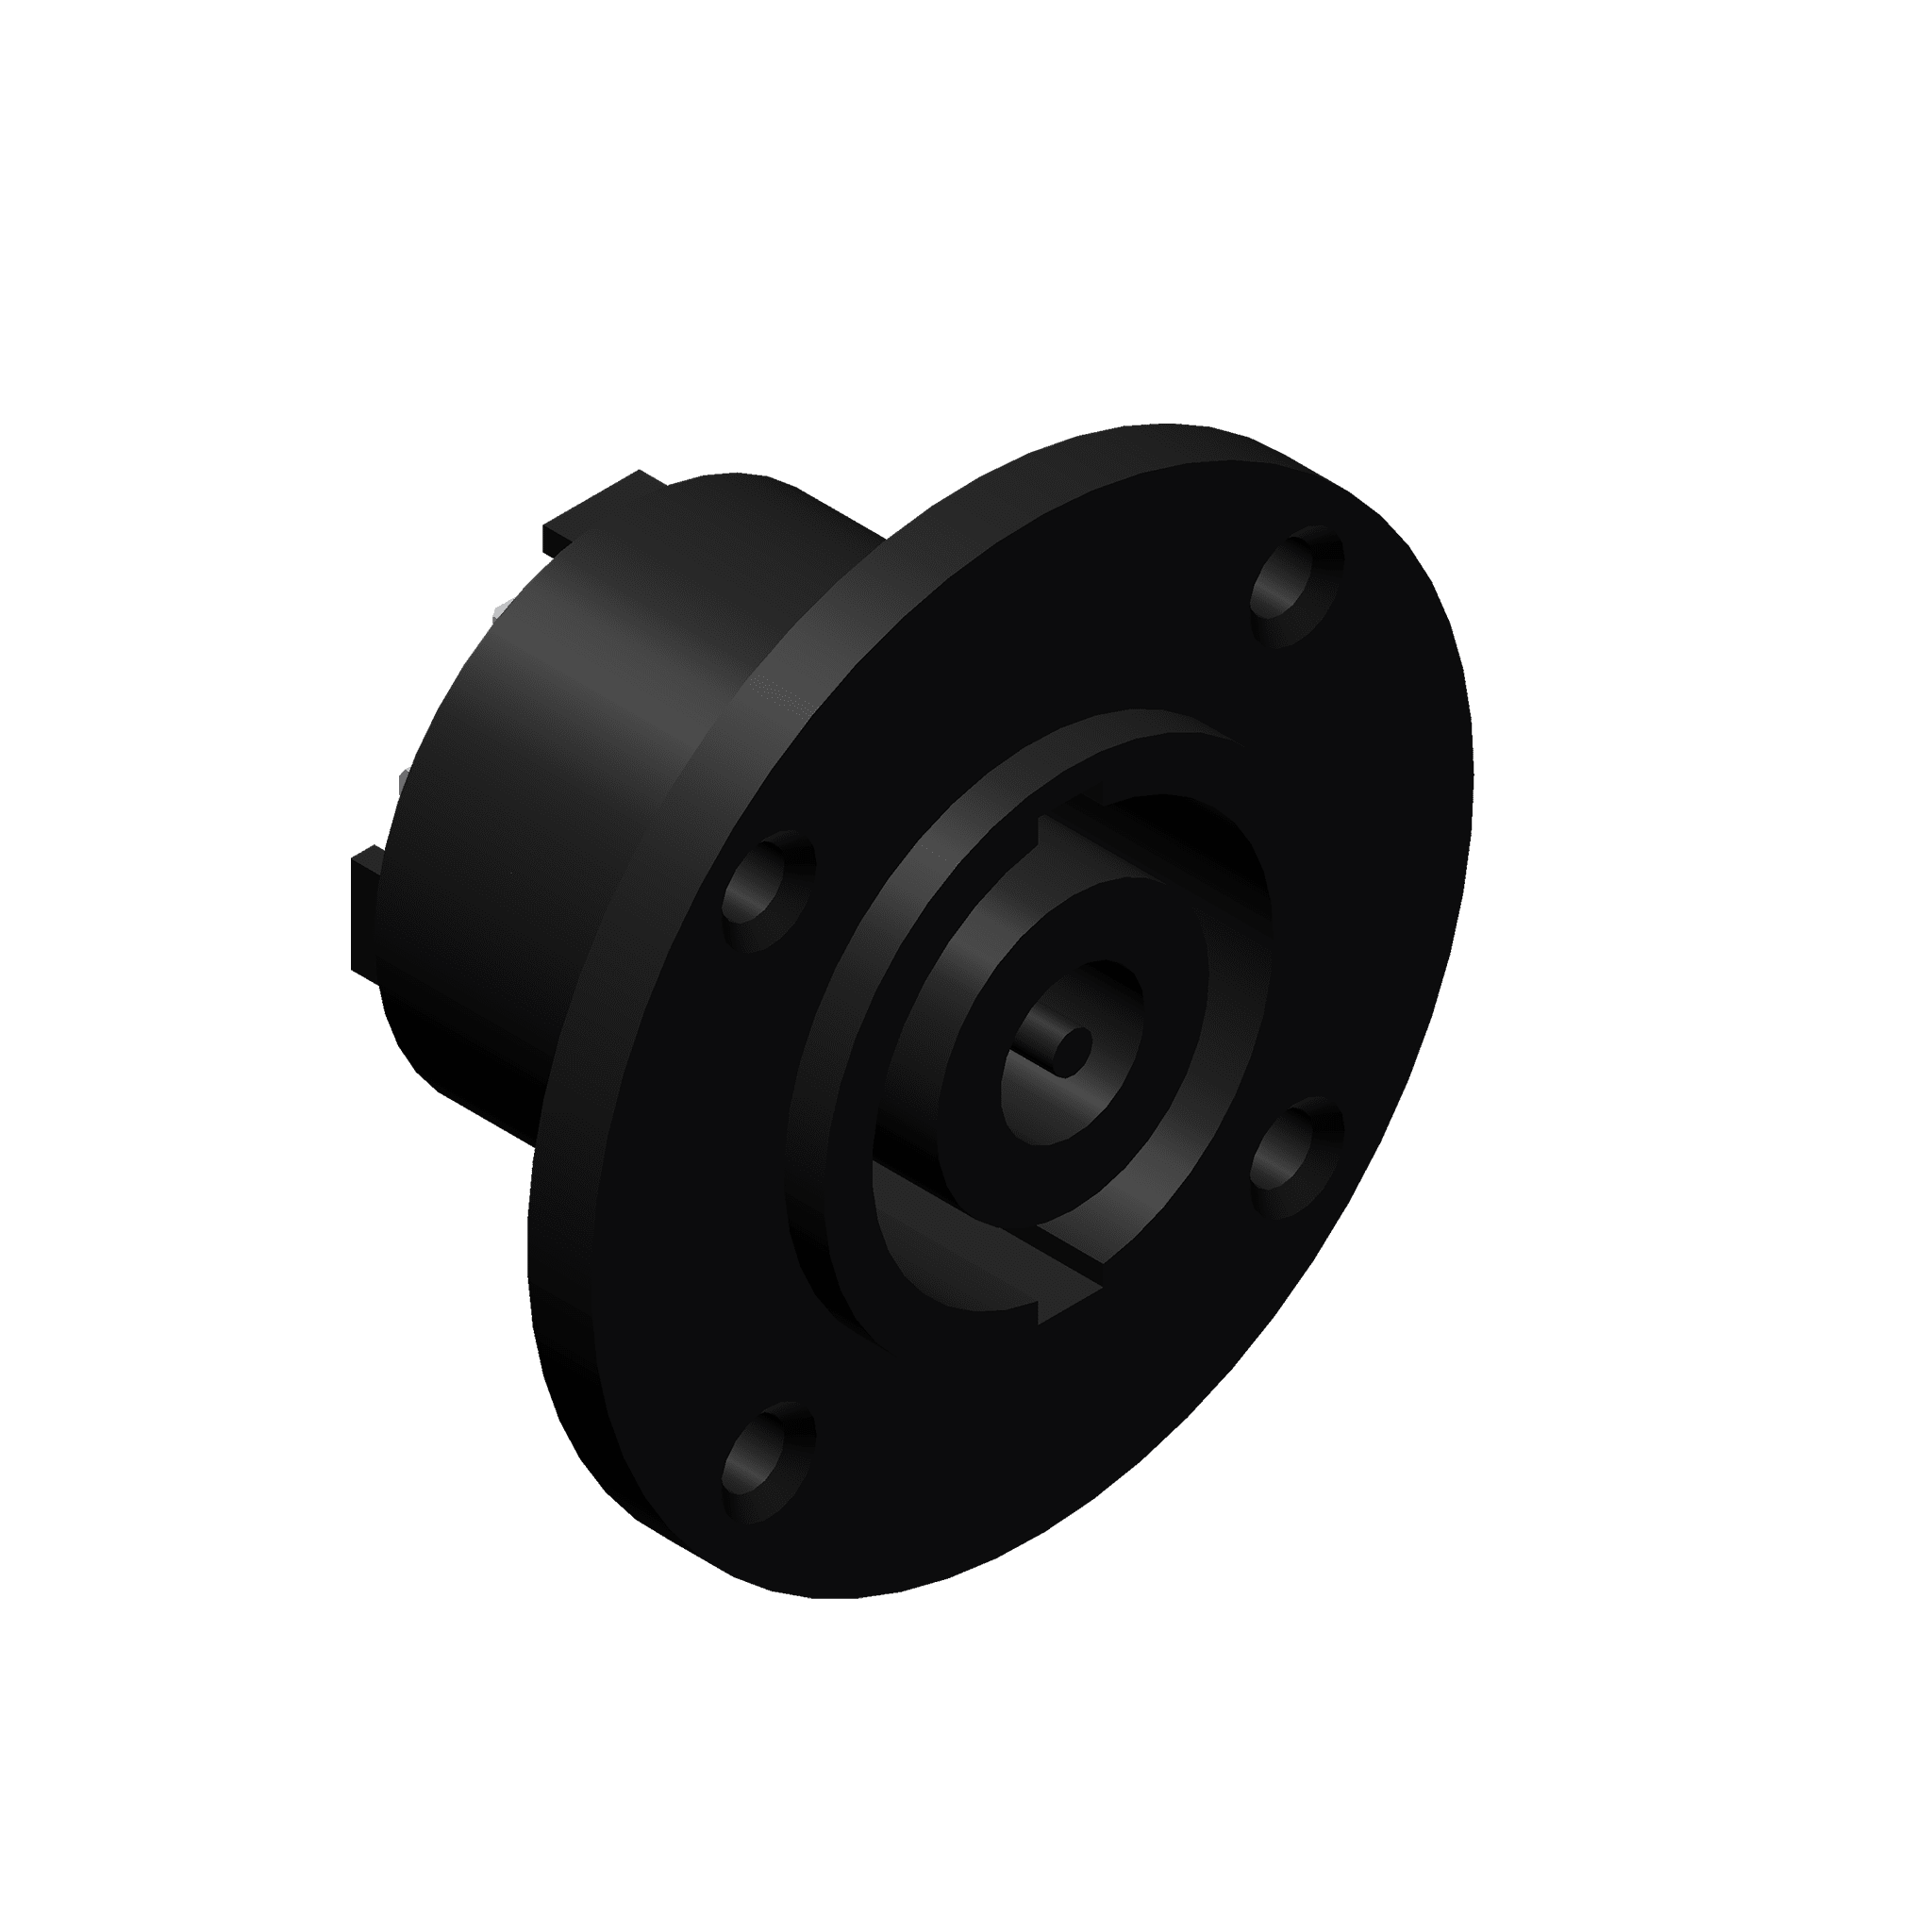 VCL8MP - Panel connector - 8-pin speaker male